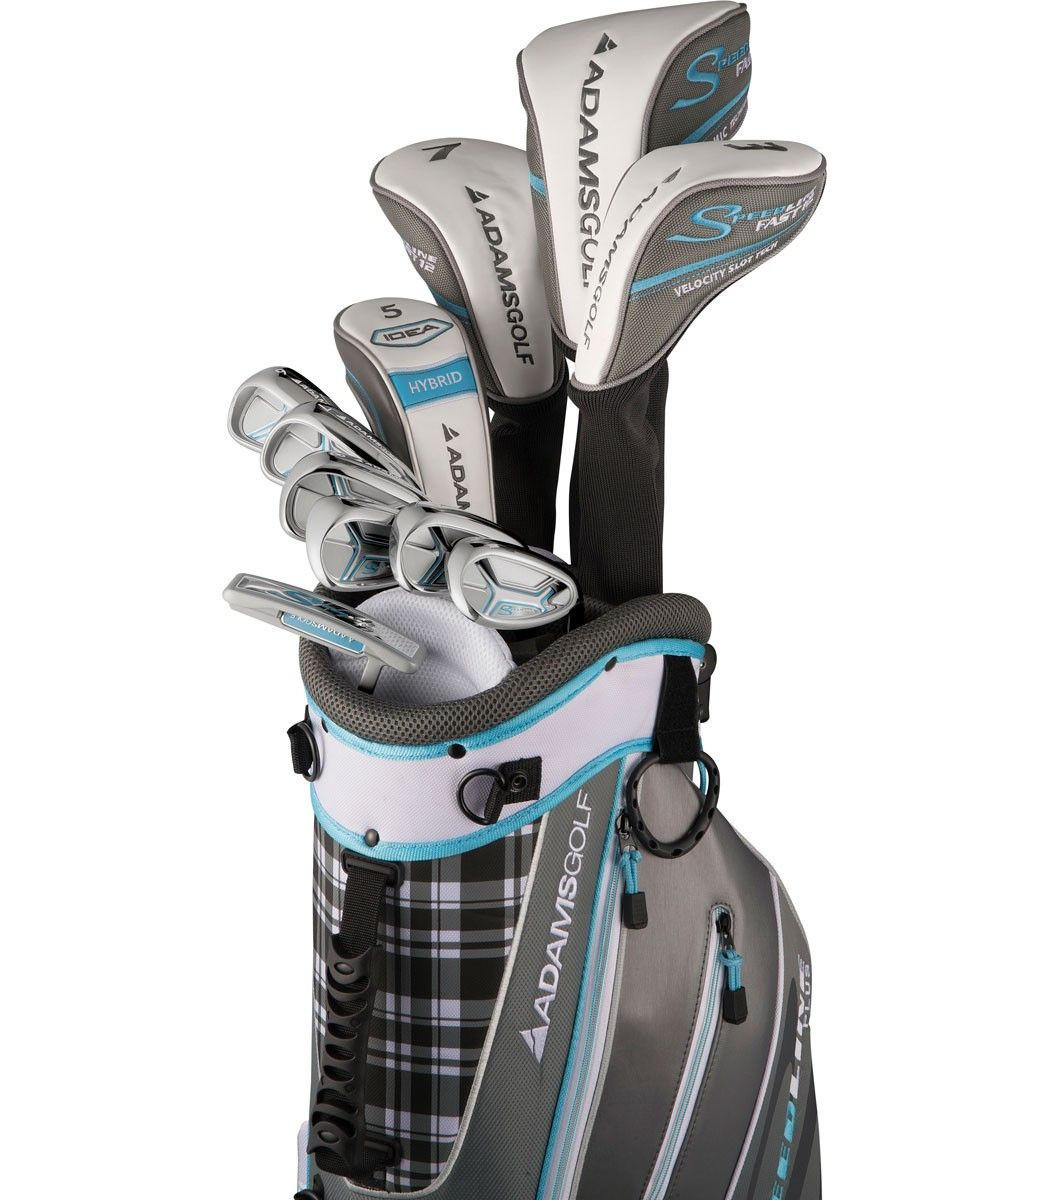 Adams Women S Sdline Plus Premium Complete Golf Set 449 The 11 Piece Is A Smart Choice For Any Lady Golfer Who